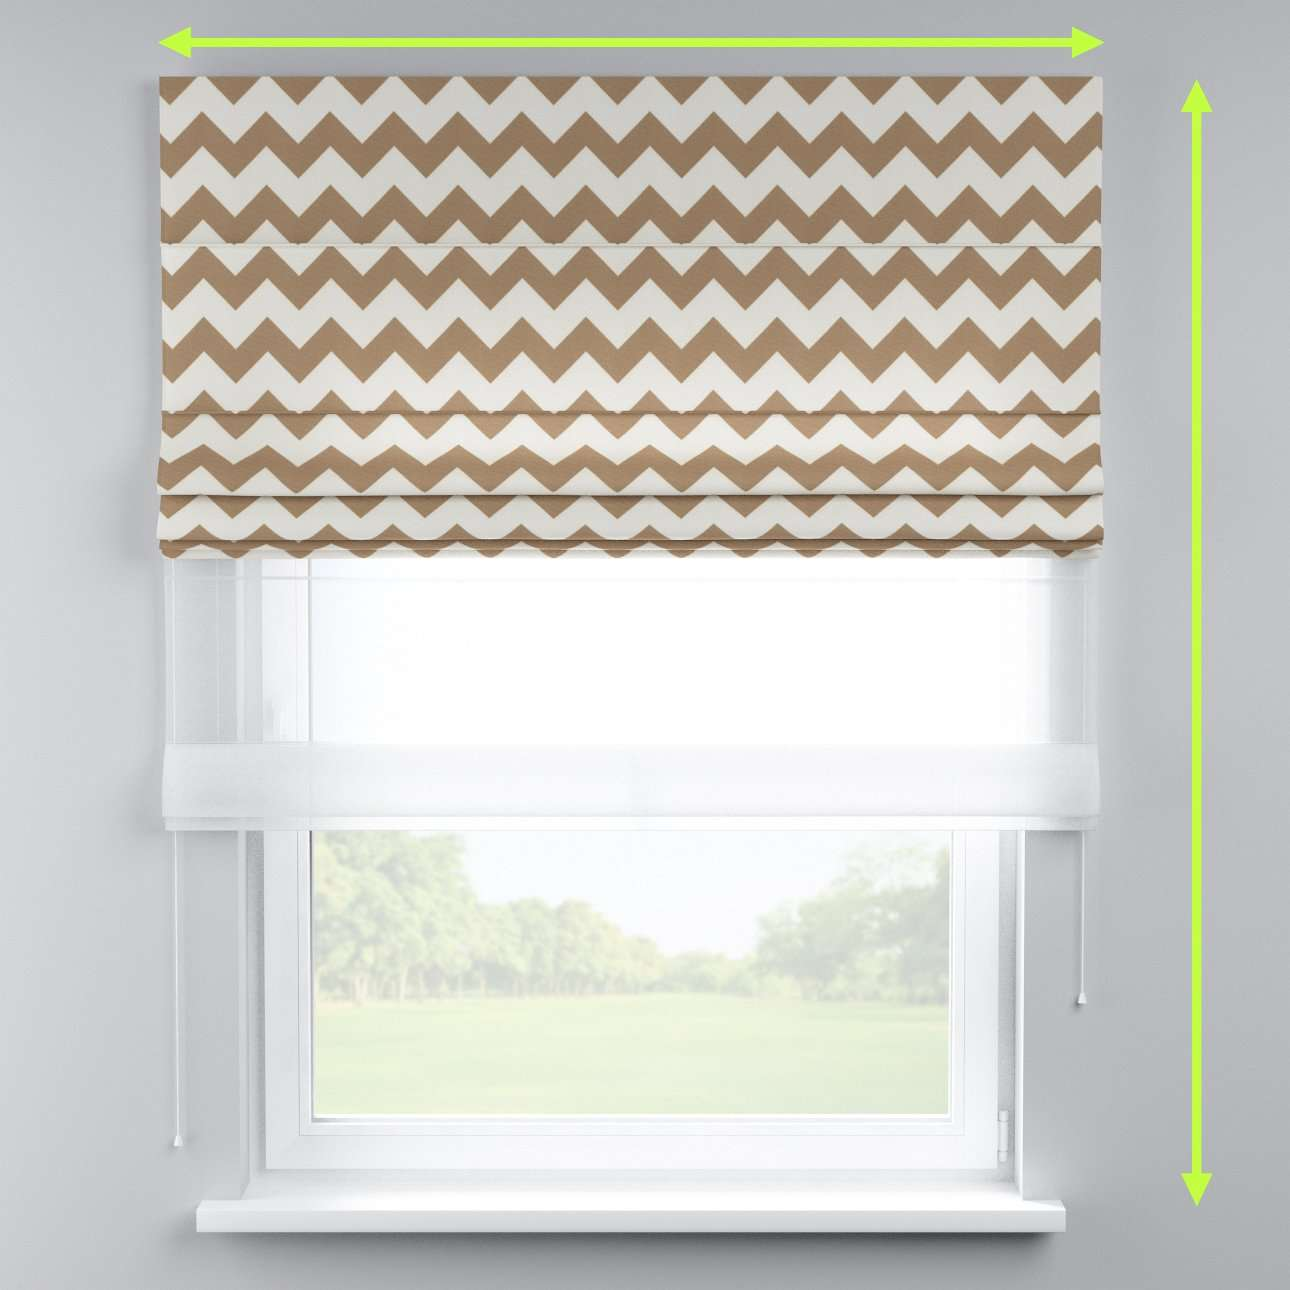 Voile and fabric roman blind (DUO II) in collection Comic Book & Geo Prints, fabric: 135-01